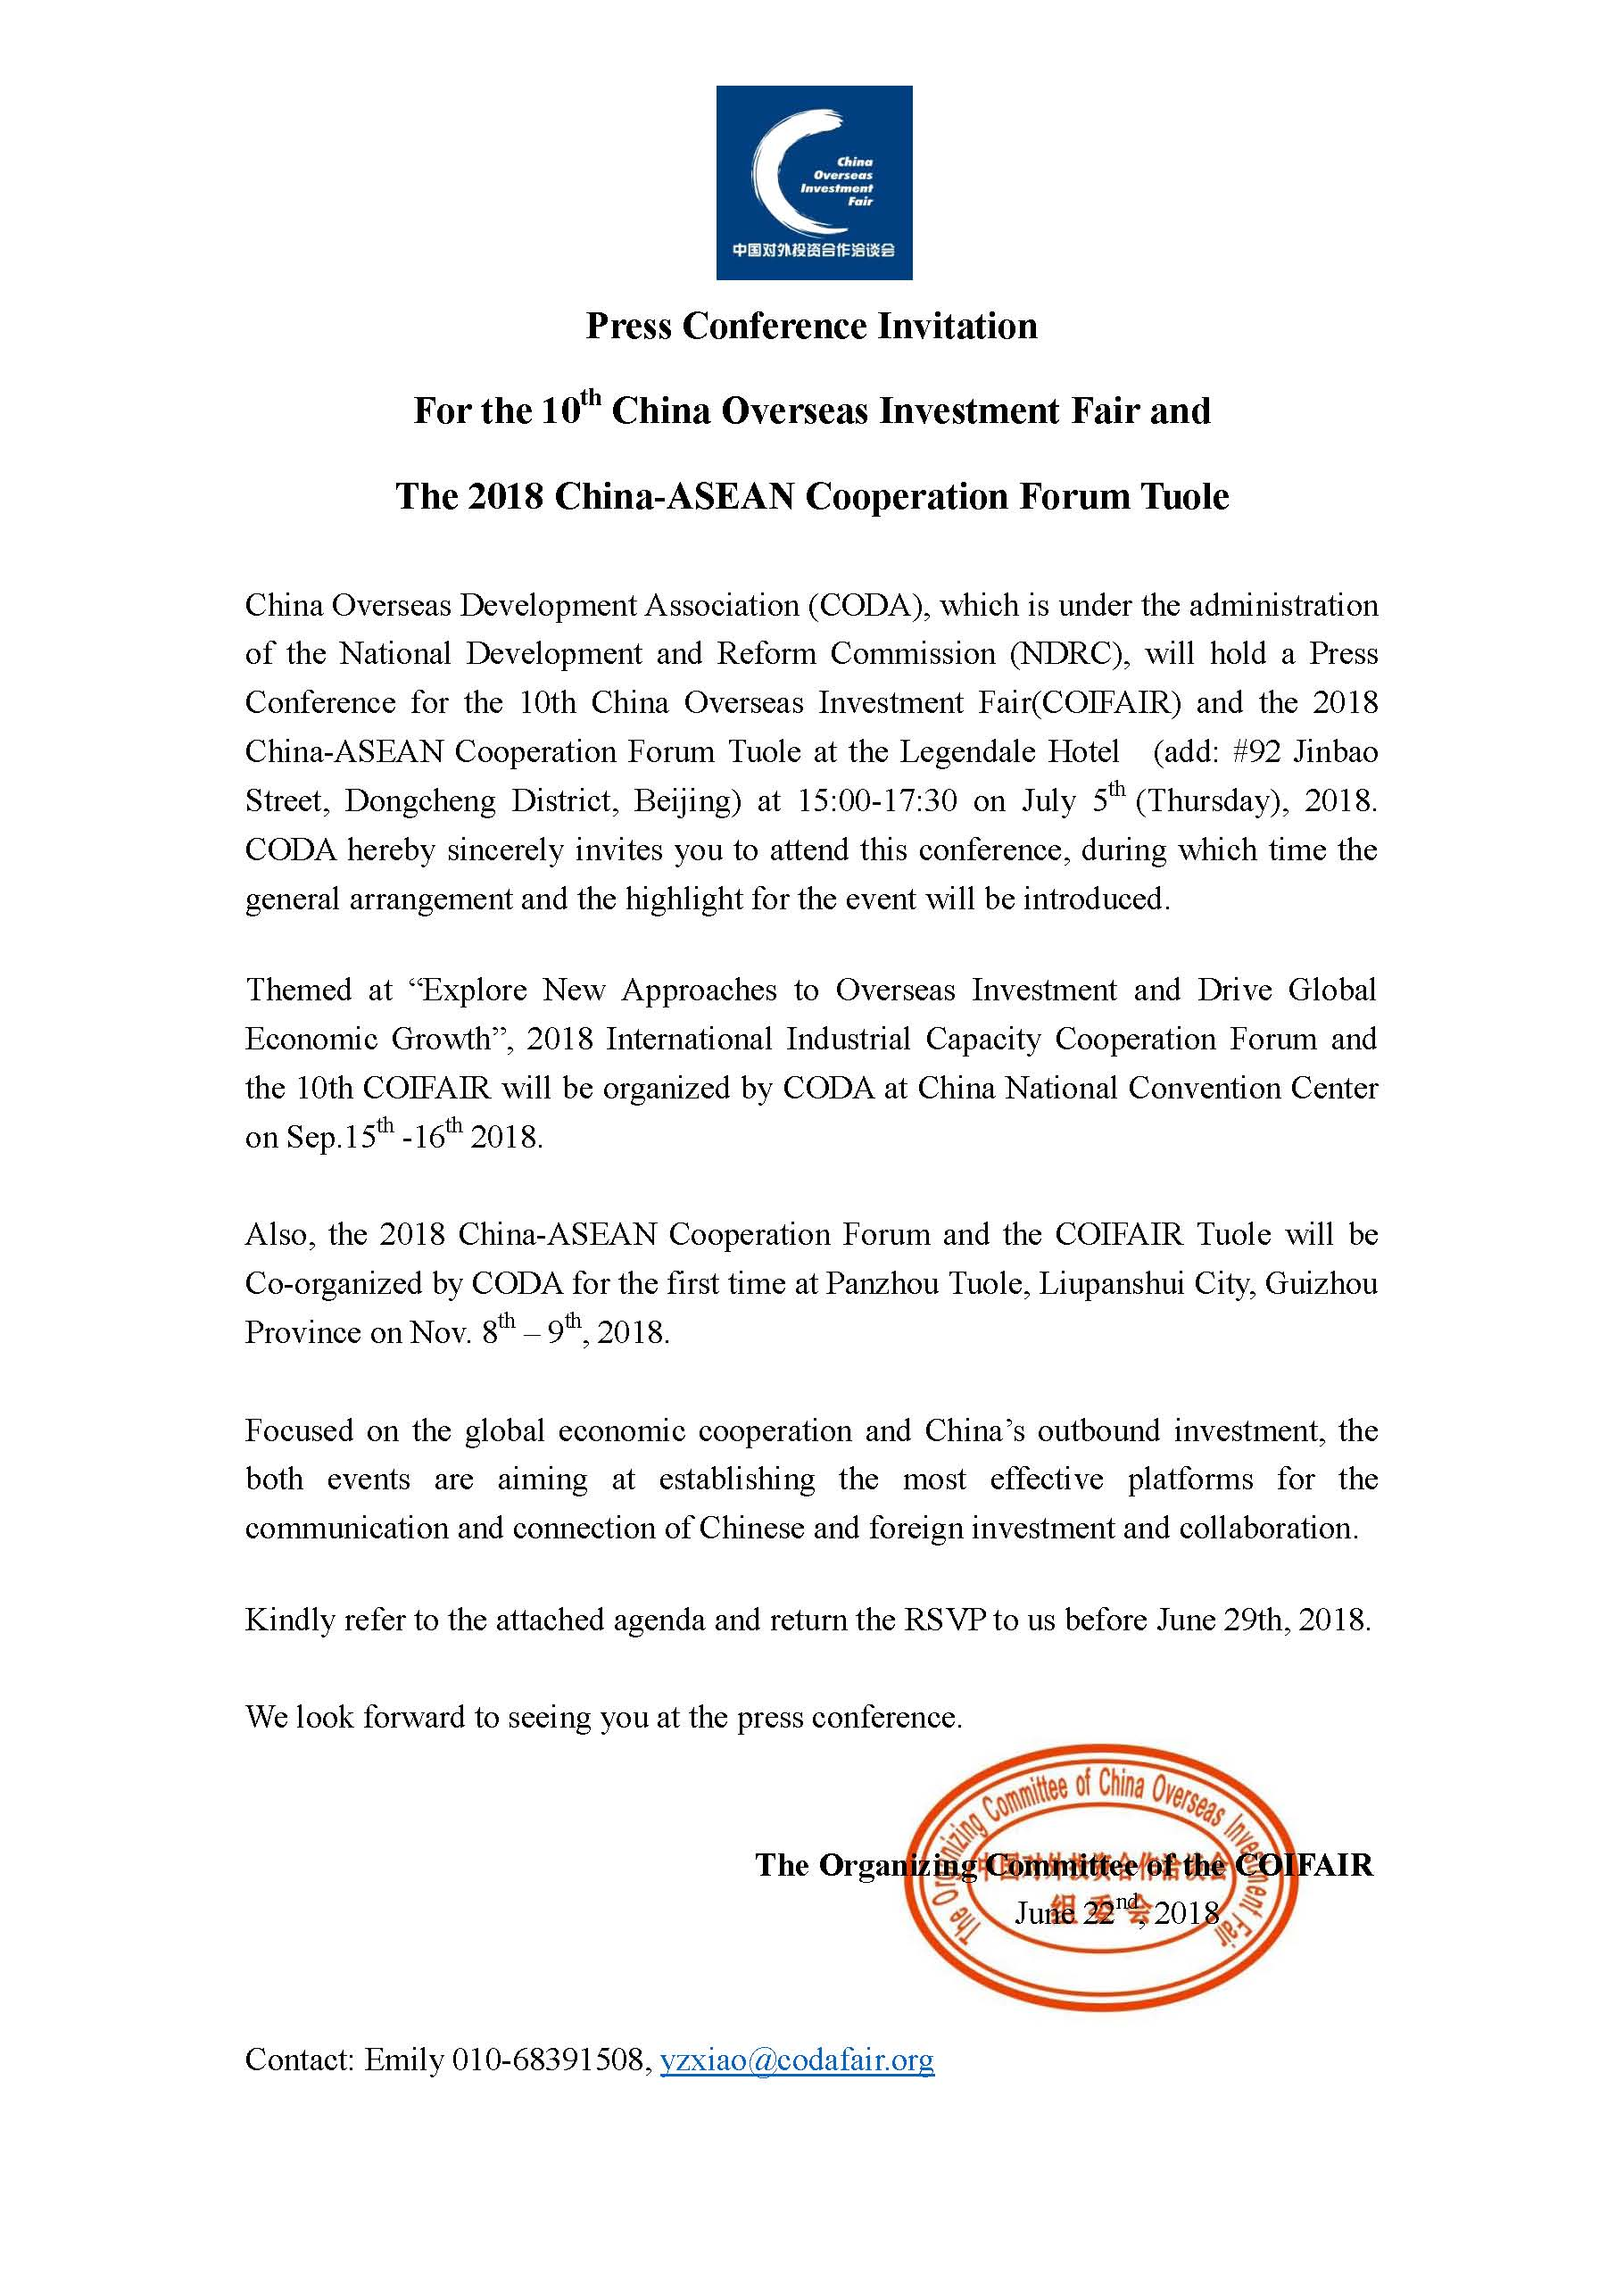 Press Conference Invitation For The 10th China Overseas Investment